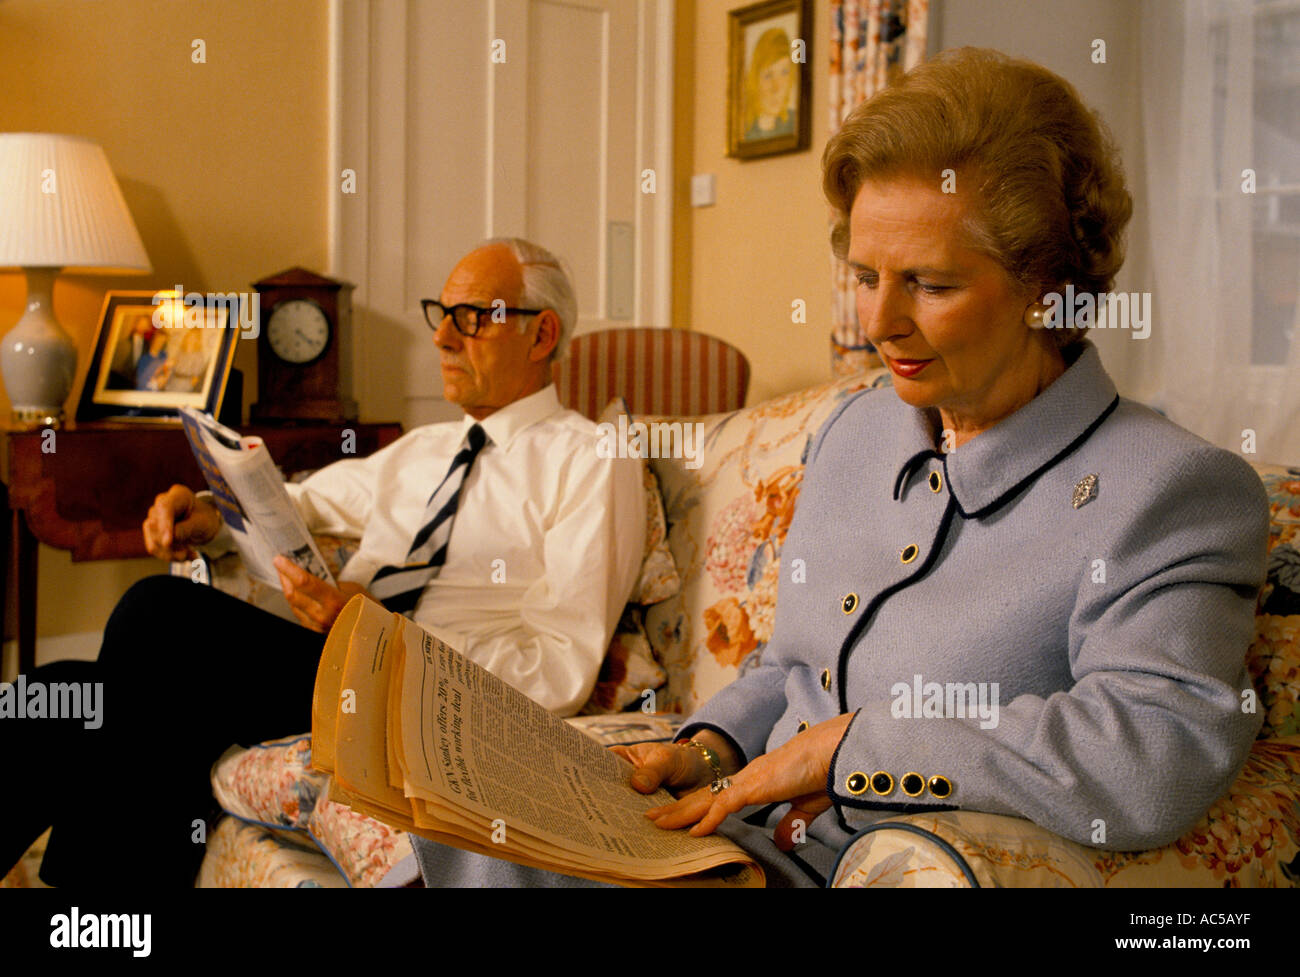 THATCHER DOWNING STREET MARGARET THATCHER SAT IN THE LIVING ROOM WITH HER HUSBAND DENIS READING A BOOK 1989 - Stock Image